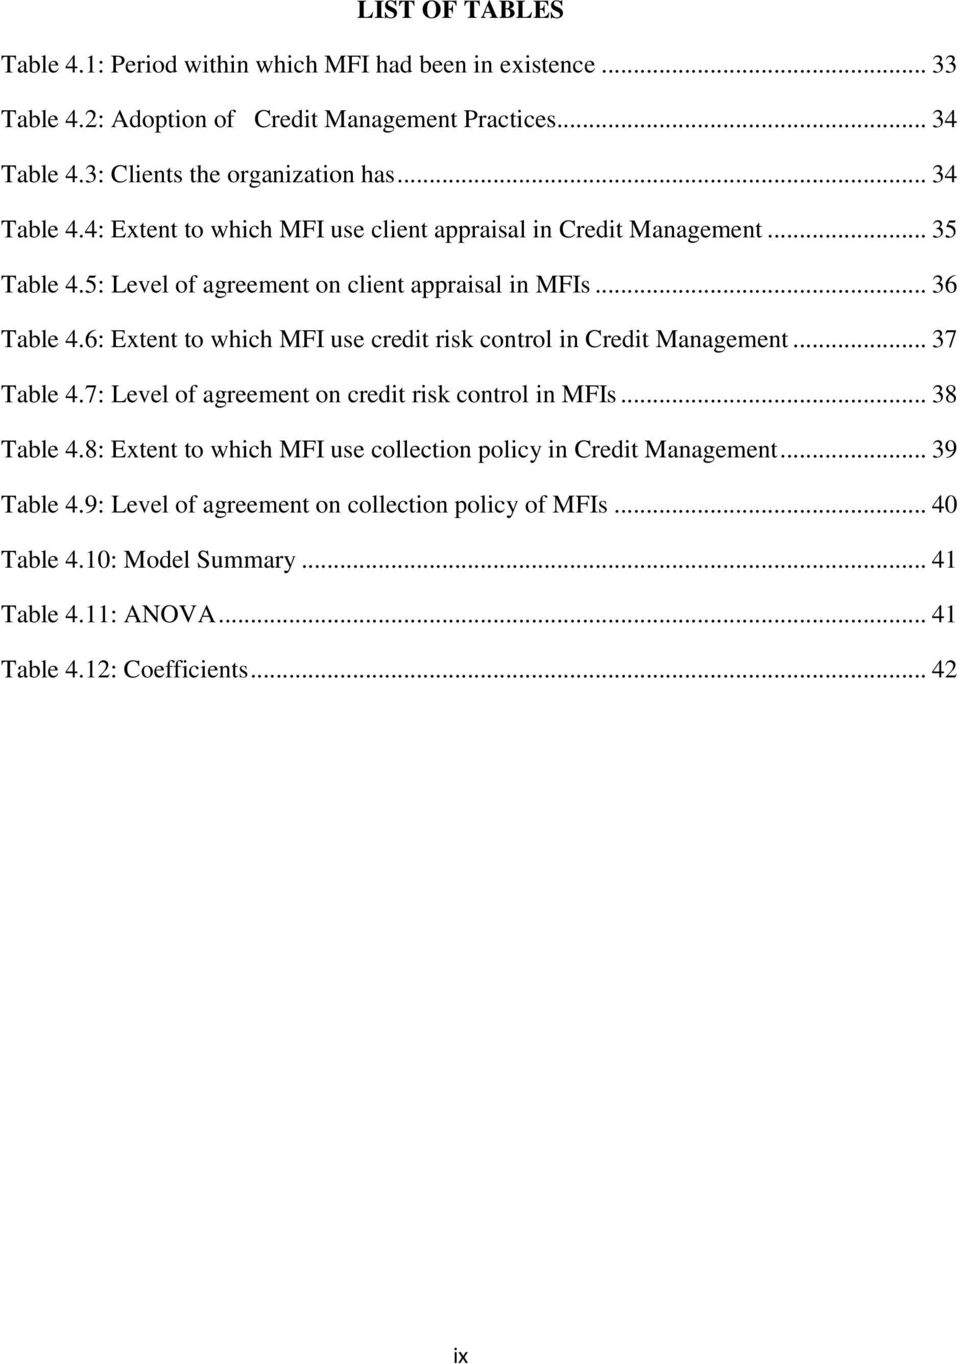 6: Extent to which MFI use credit risk control in Credit Management... 37 Table 4.7: Level of agreement on credit risk control in MFIs... 38 Table 4.